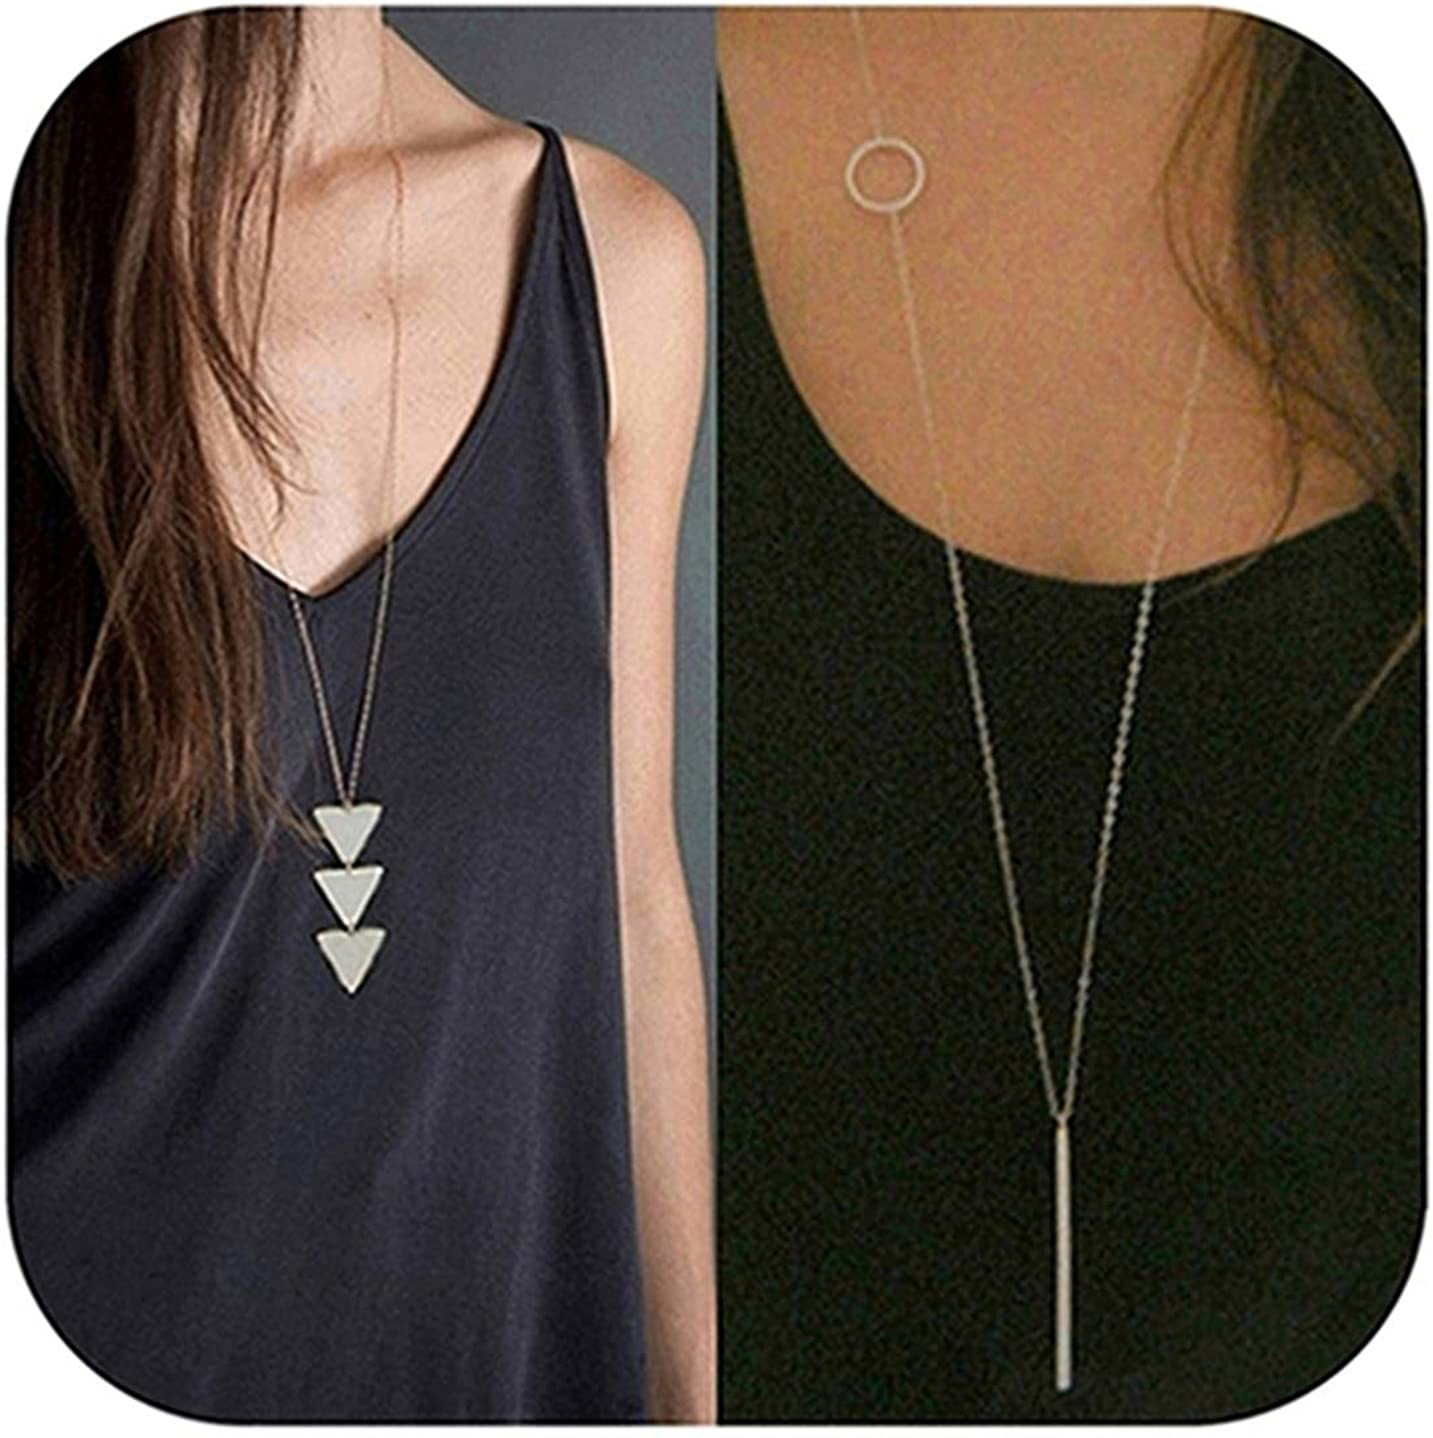 Defiro 2Pcs Y Layer Simple Bar Pendant Necklace Center Long Lariat Chain for Women Jewelry JAKIELAX